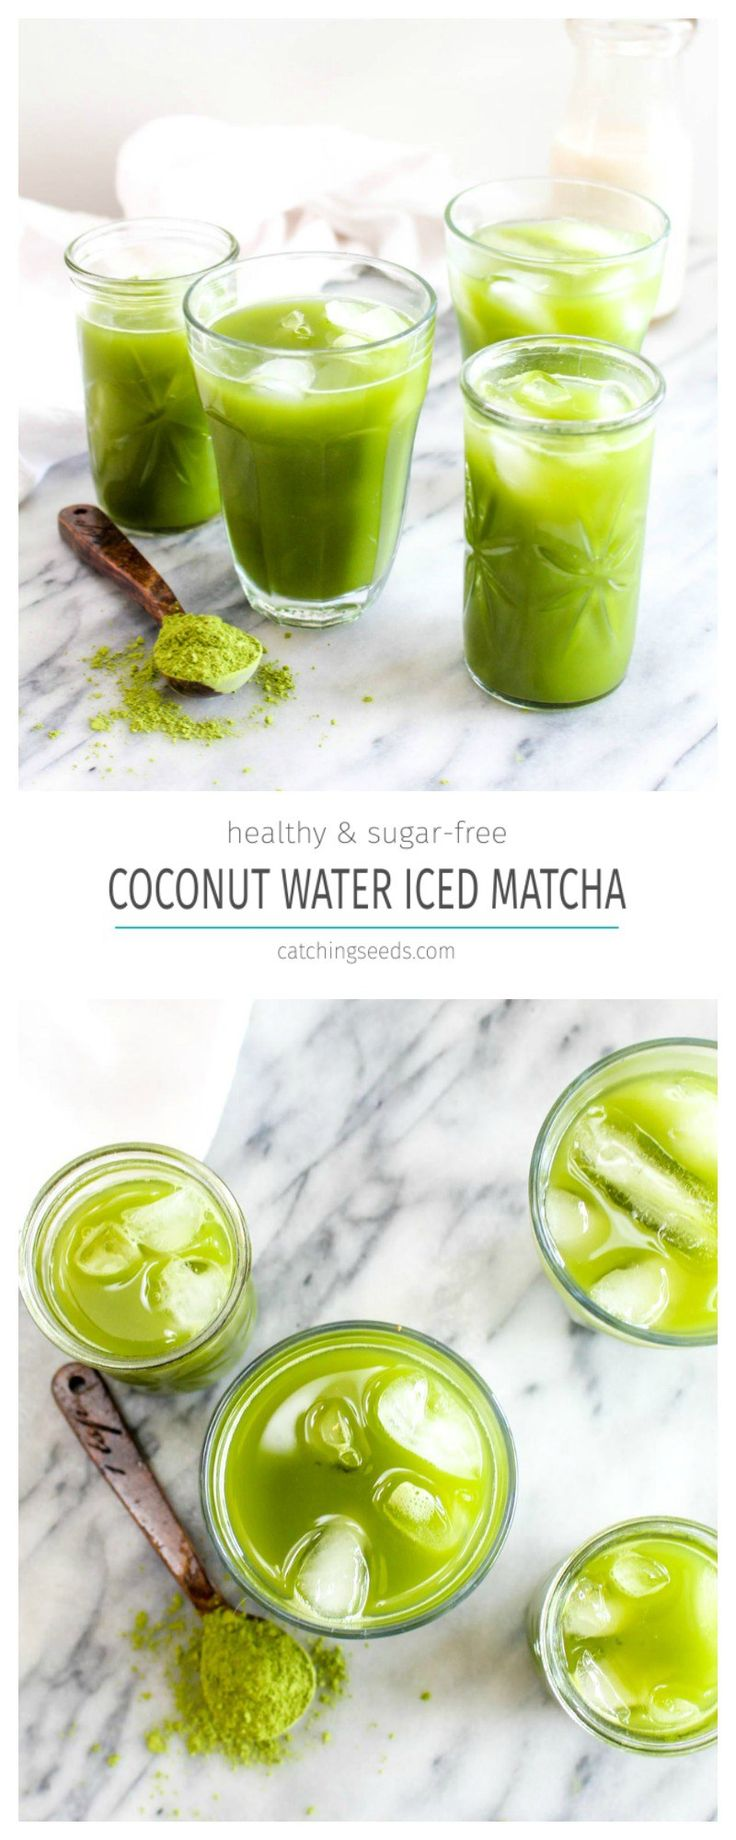 This Iced Coconut Water Matcha Latte is a 5 minute, 2 ingredient drink recipe that is full of healthy antioxidants. It will give you sustained energy for hours! | CatchingSeeds.com